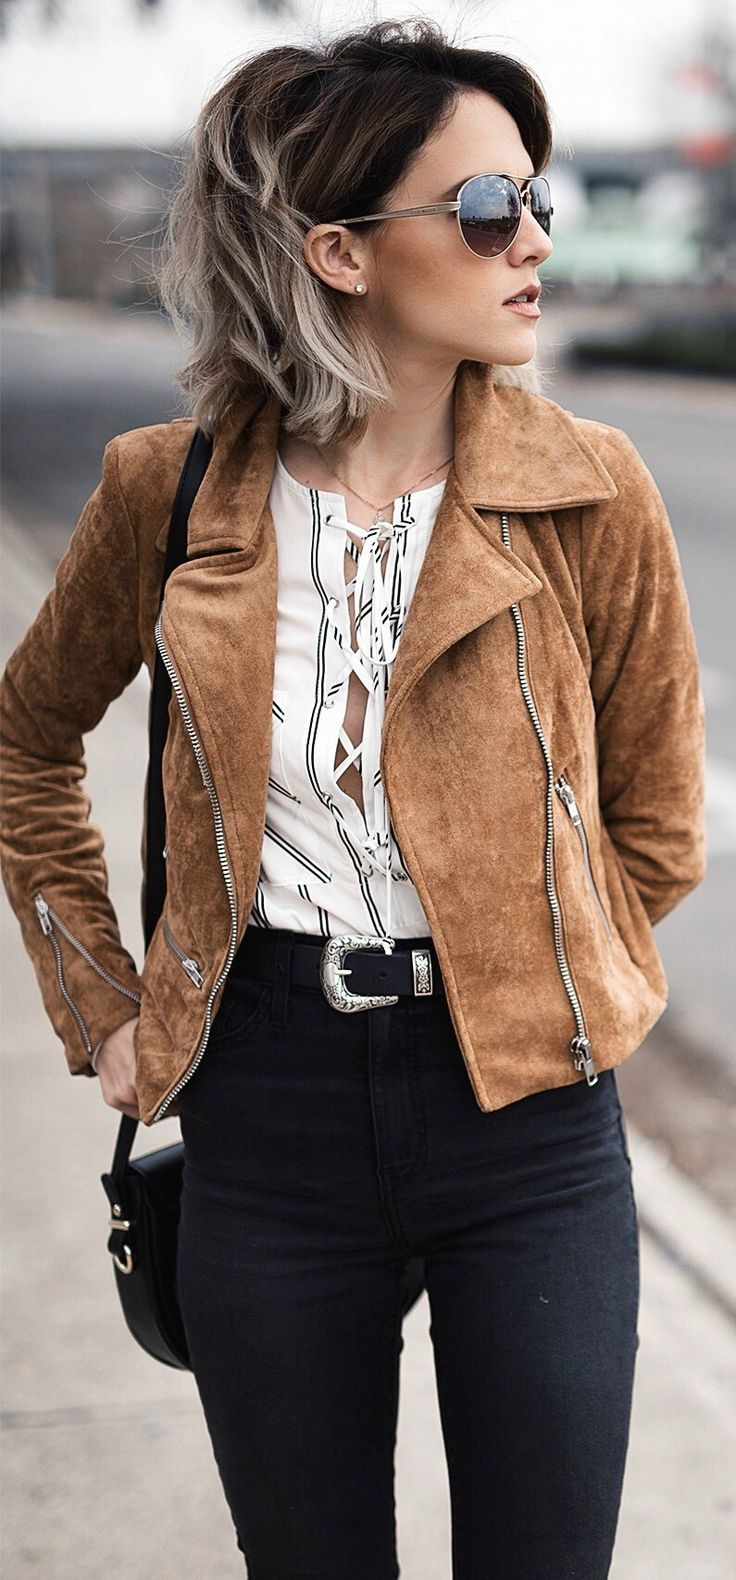 Suede jacket, a neutral blouse and black jeans. Perfect street style vibe to copy later.